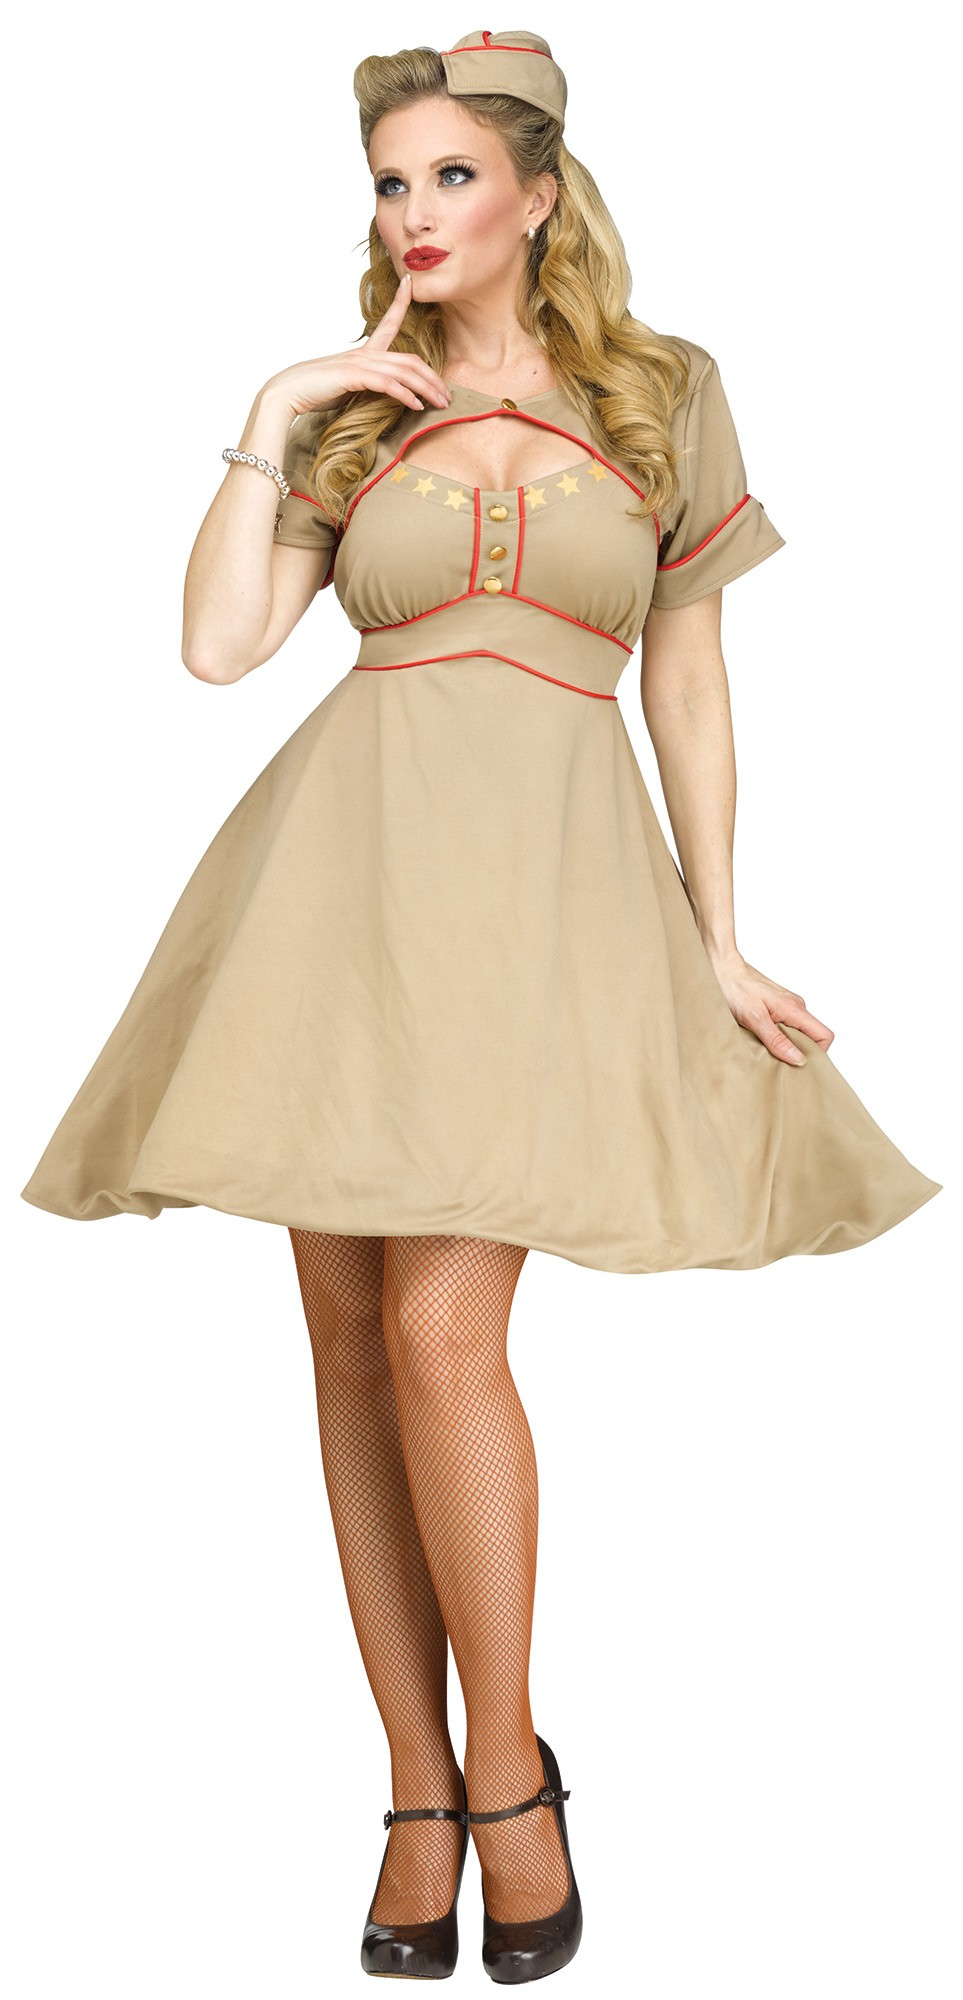 Army Gal Retro Pinup WWII WW2 1940u0027s Nurse Adult Costume Small/Medium ...  sc 1 st  Walmart & Army Gal Retro Pinup WWII WW2 1940u0027s Nurse Adult Costume Small ...